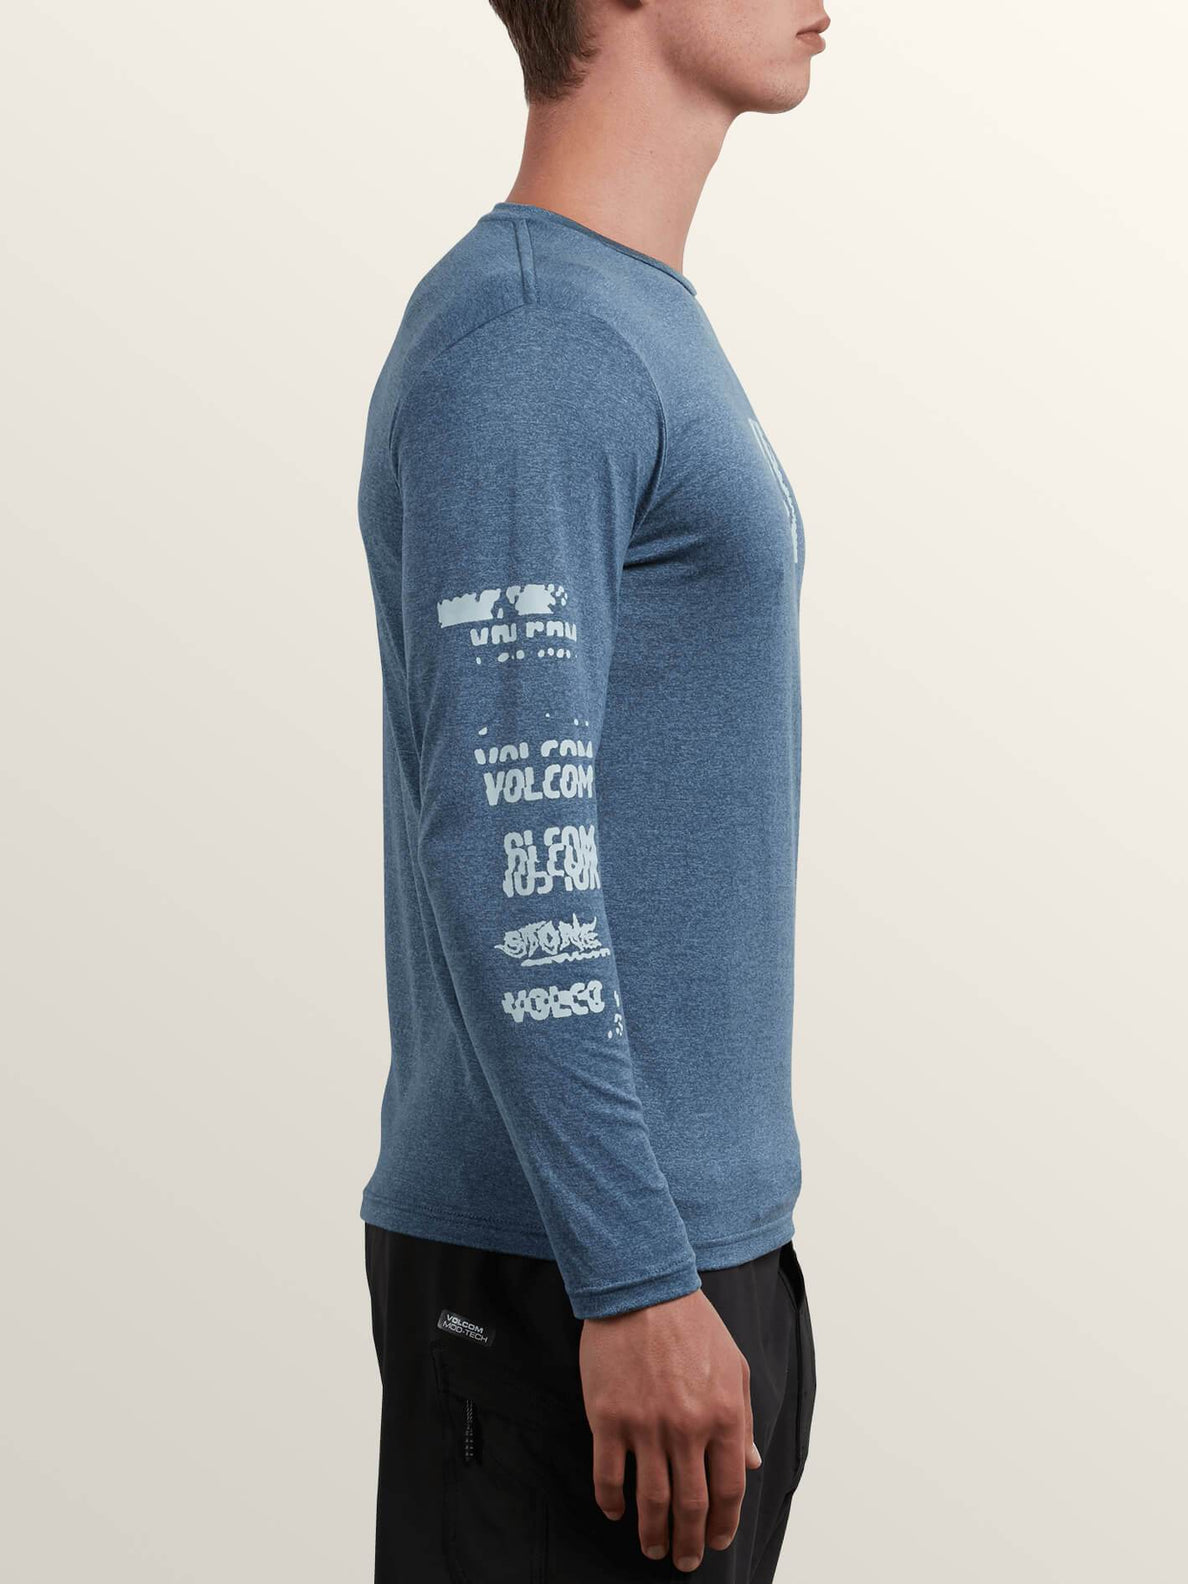 Lido Pixel Heather Long Sleeve Rashguard In Deep Blue, Second Alternate View